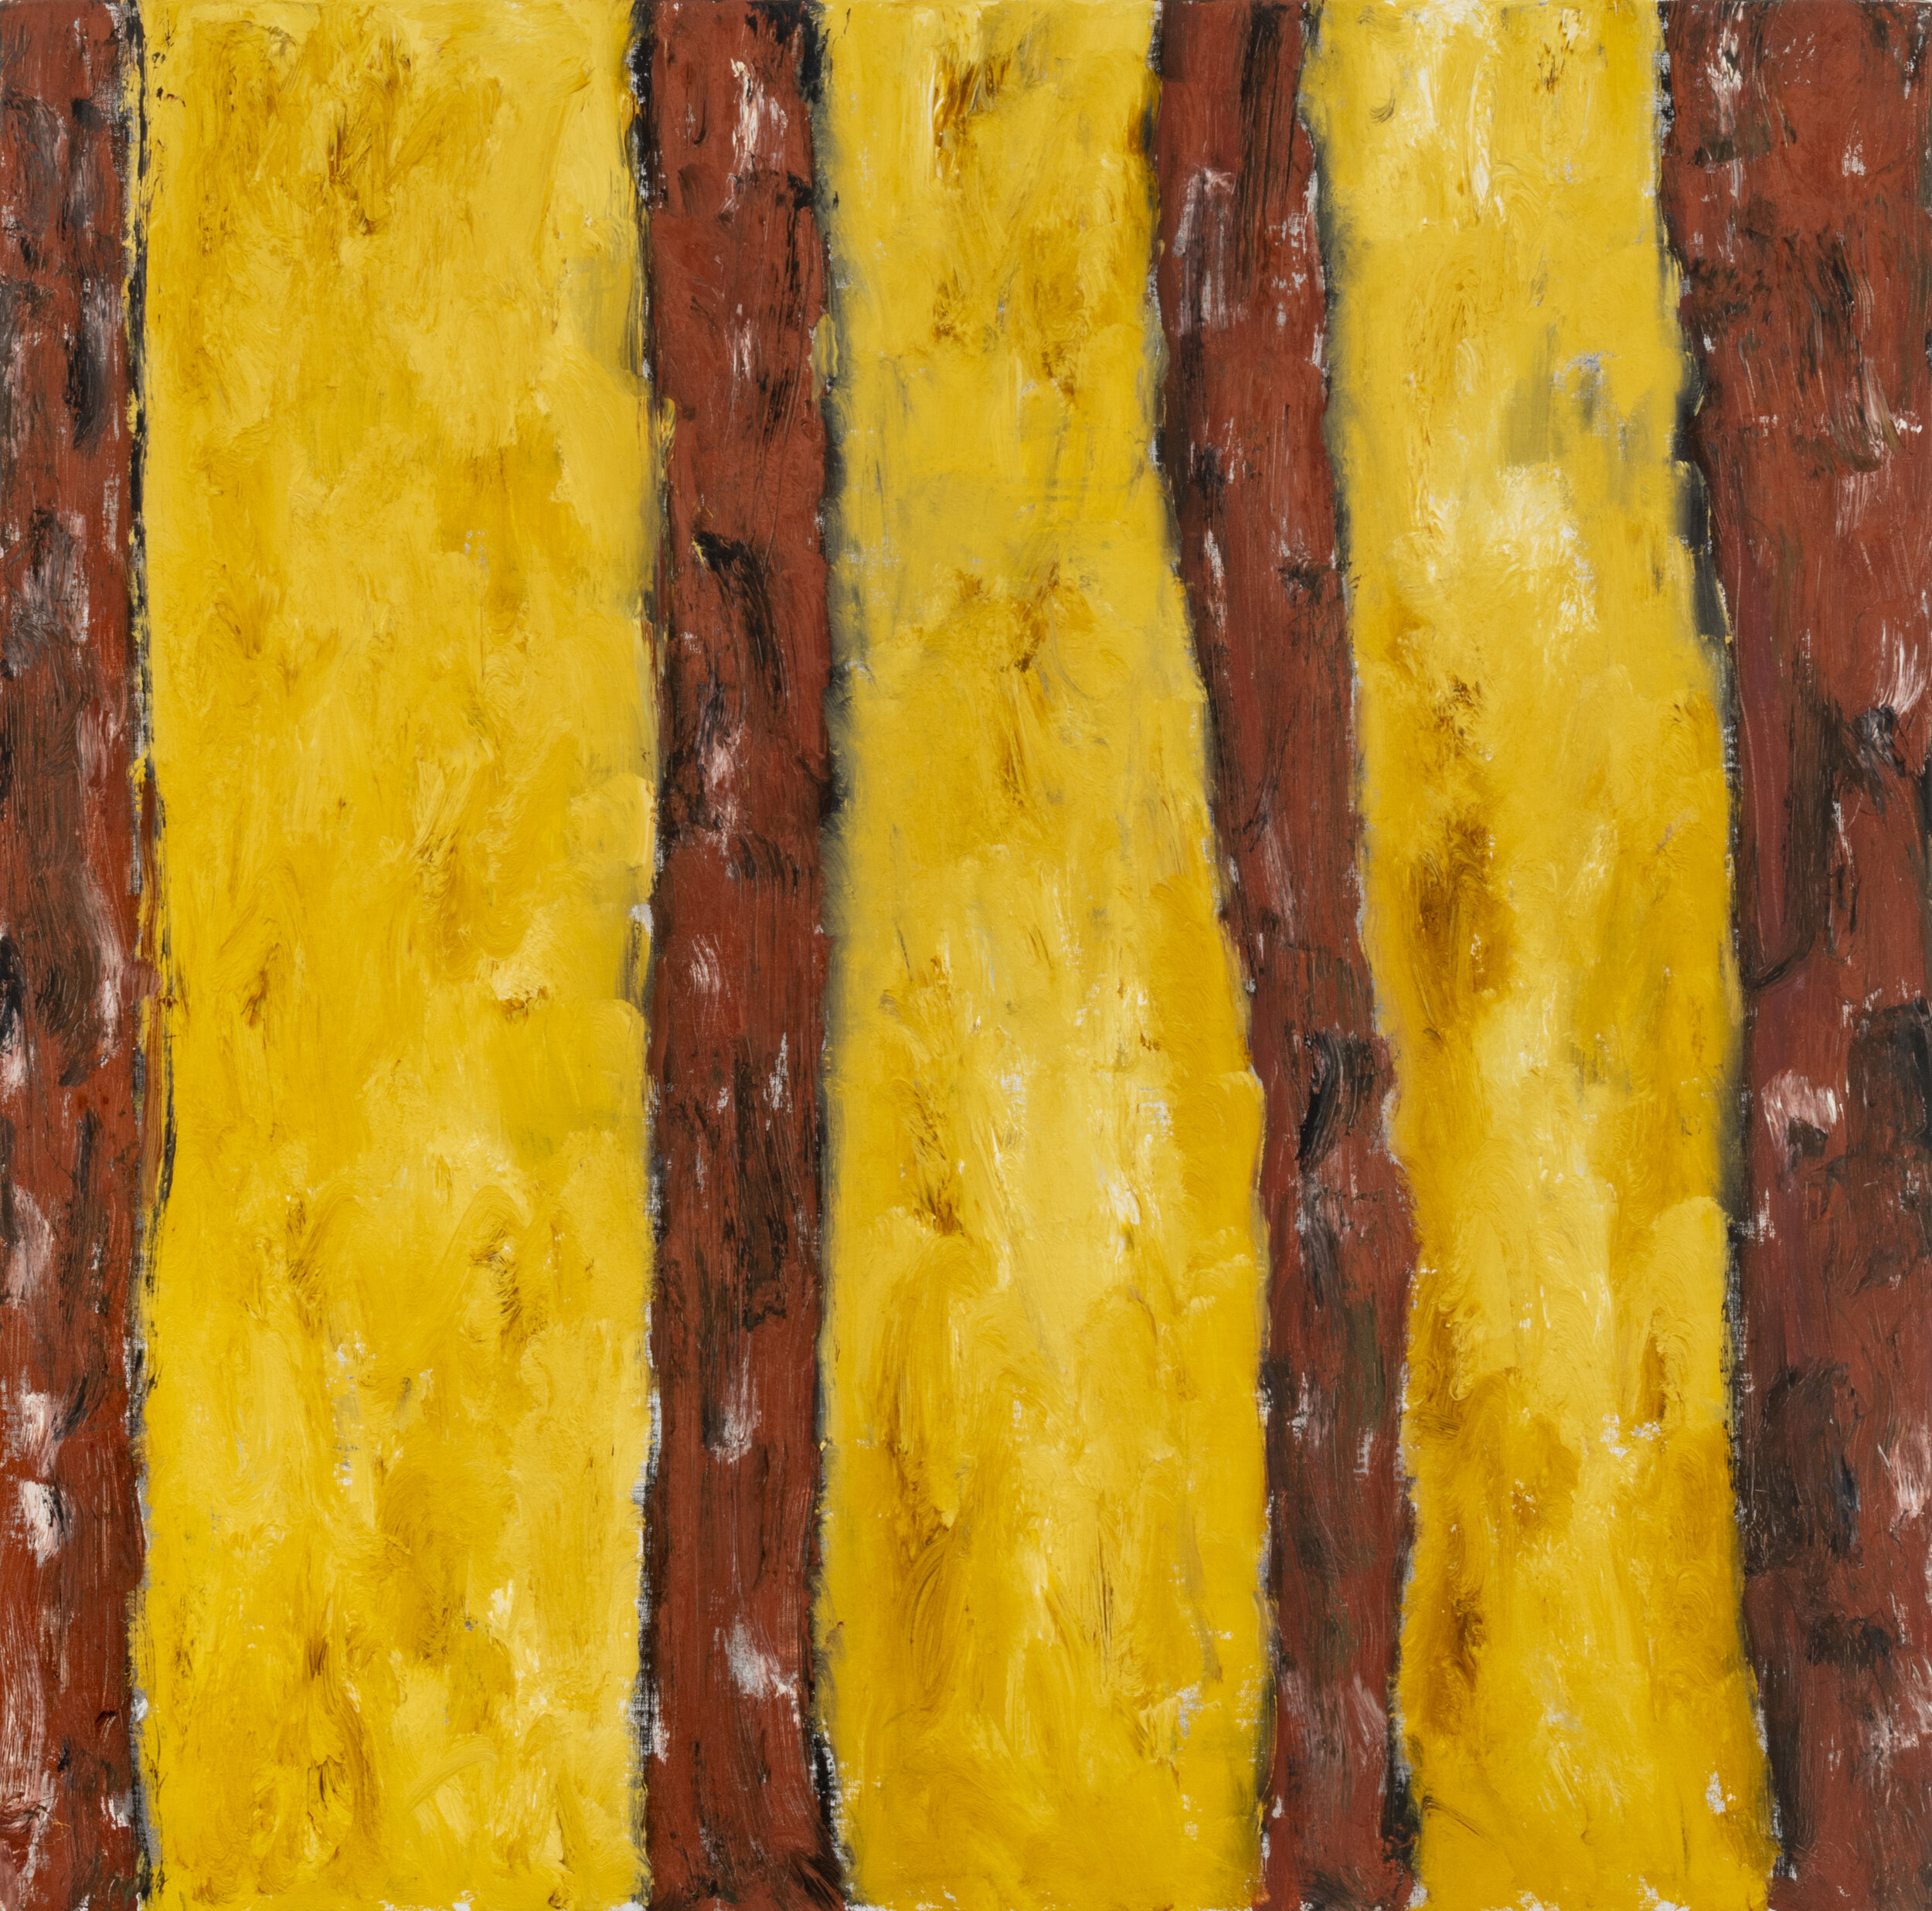 untitled,  1999 oil on linen 36 x 36 inches